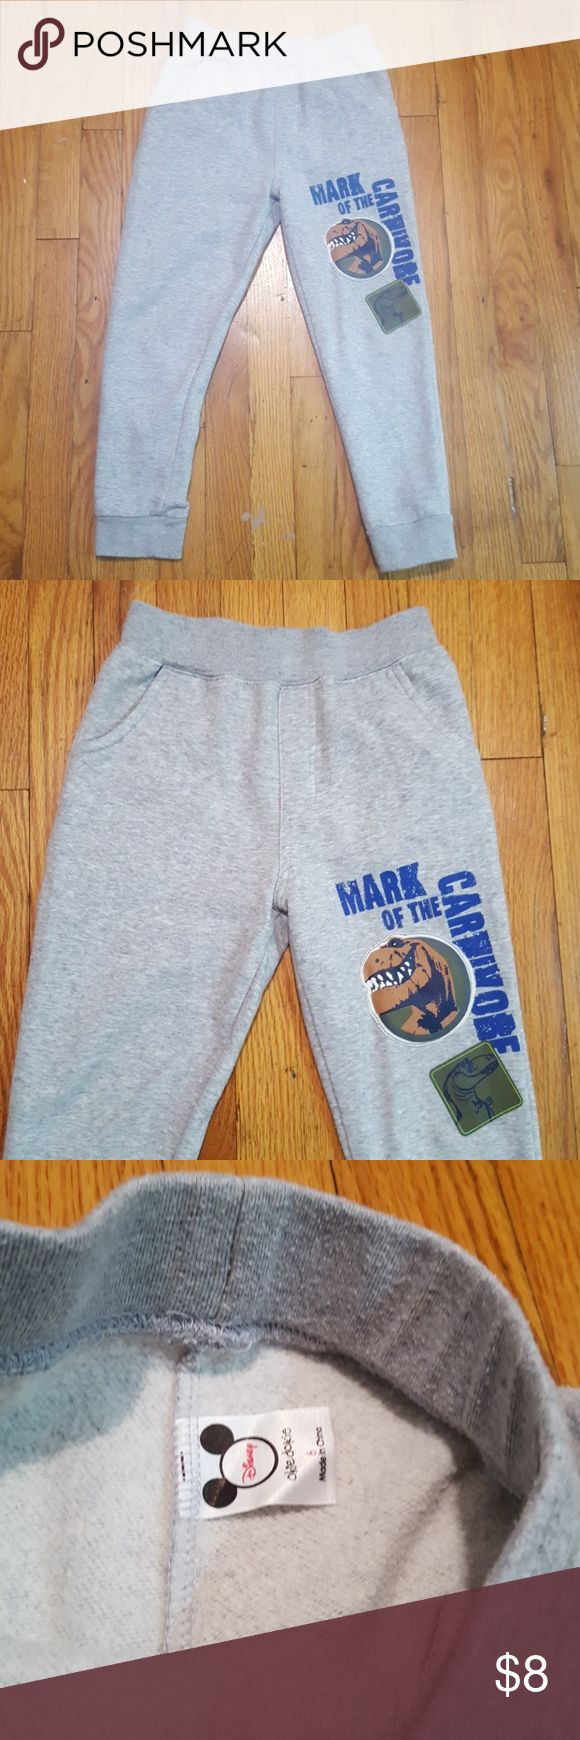 Disney's The Good Dinosaur Joggers Boys, light gray dinosaur slim fit joggers. They are 55% cotton and 45% polyester. Disney Bottoms Sweatpants & Joggers